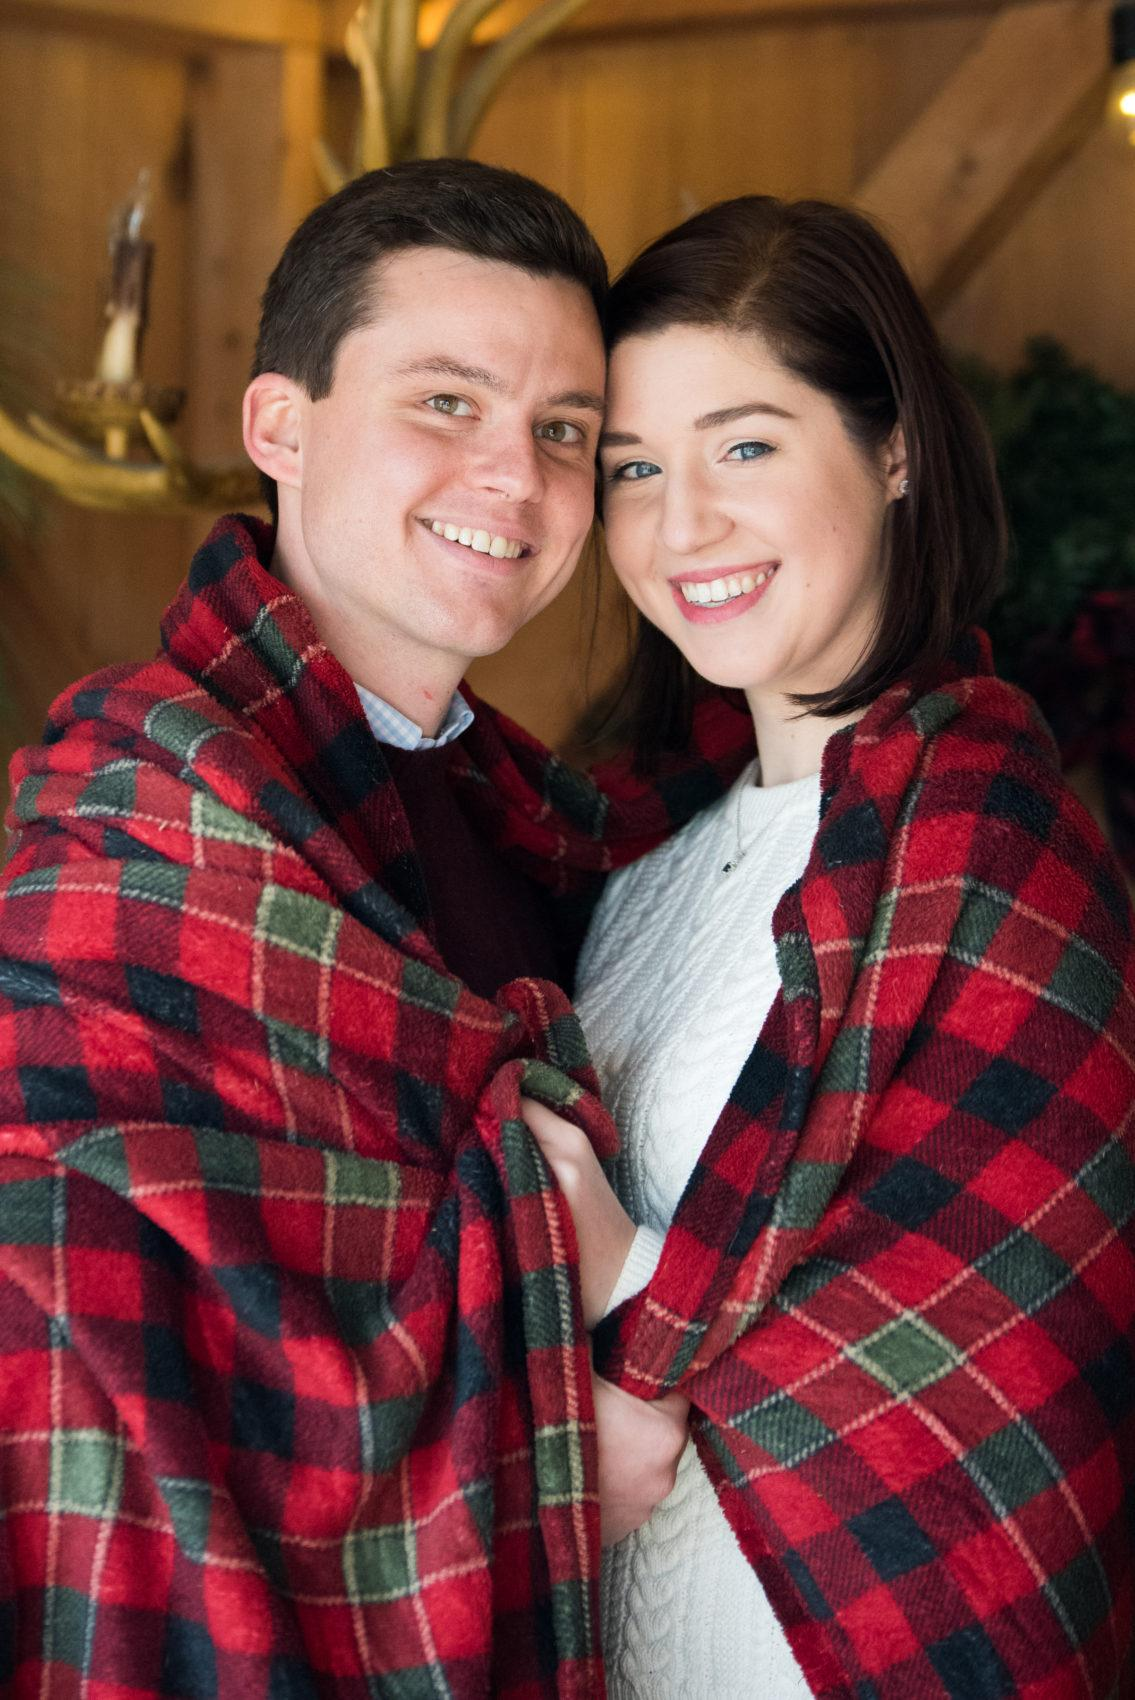 couple wrapped in plaid blanket